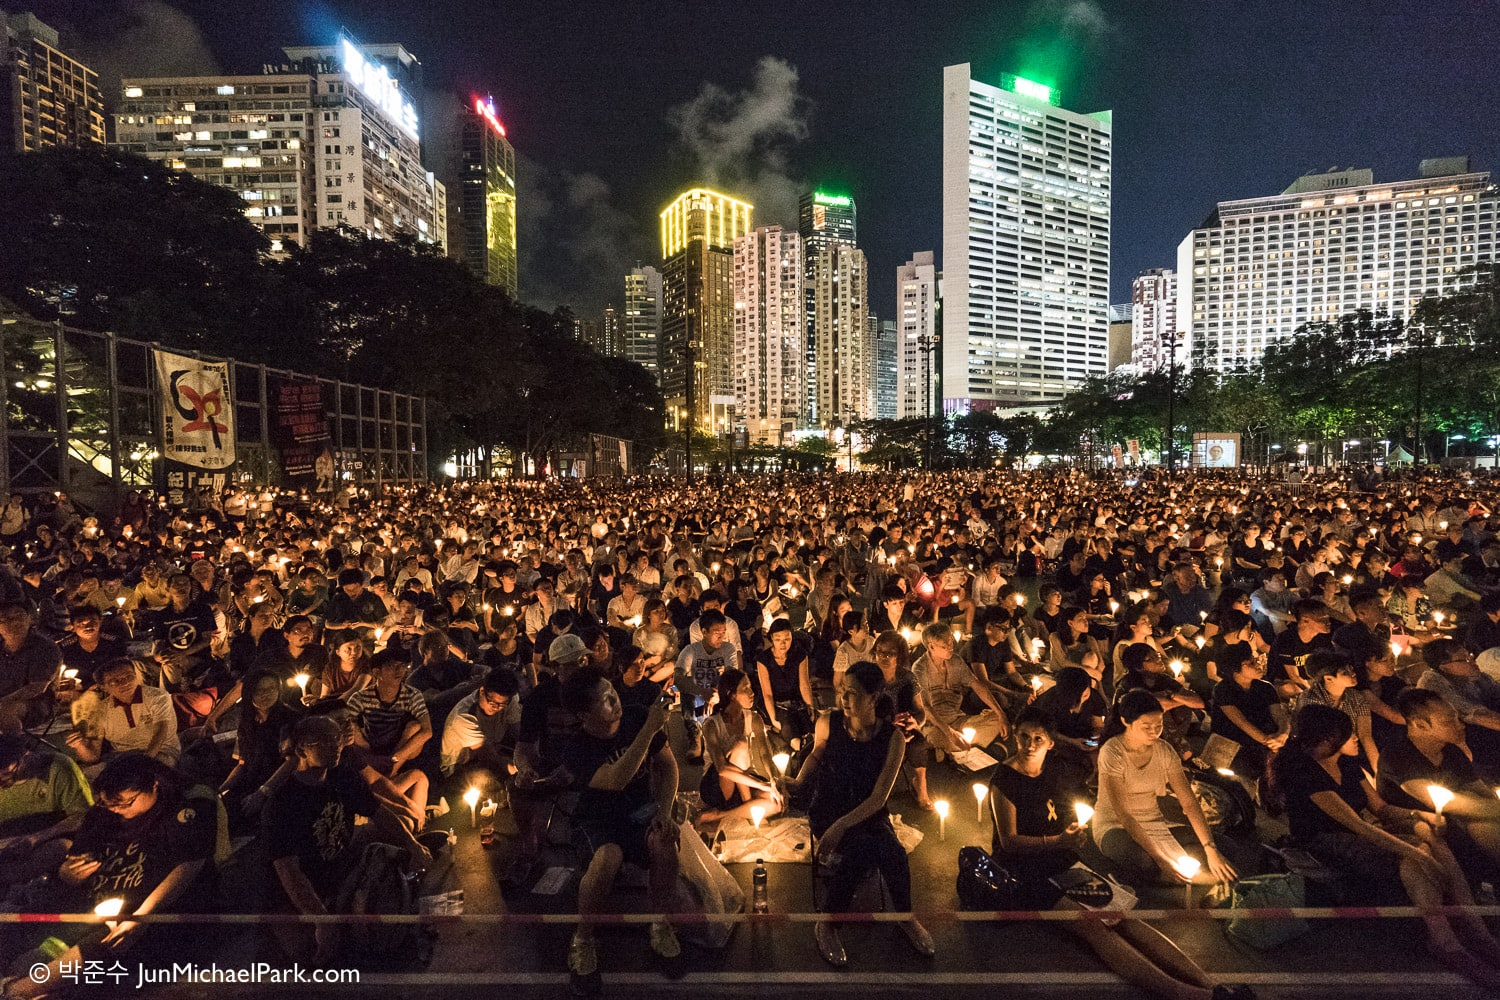 The 26th Tiananmen Anniversary, Victoria Park, Hong Kong, June 4th, 2015